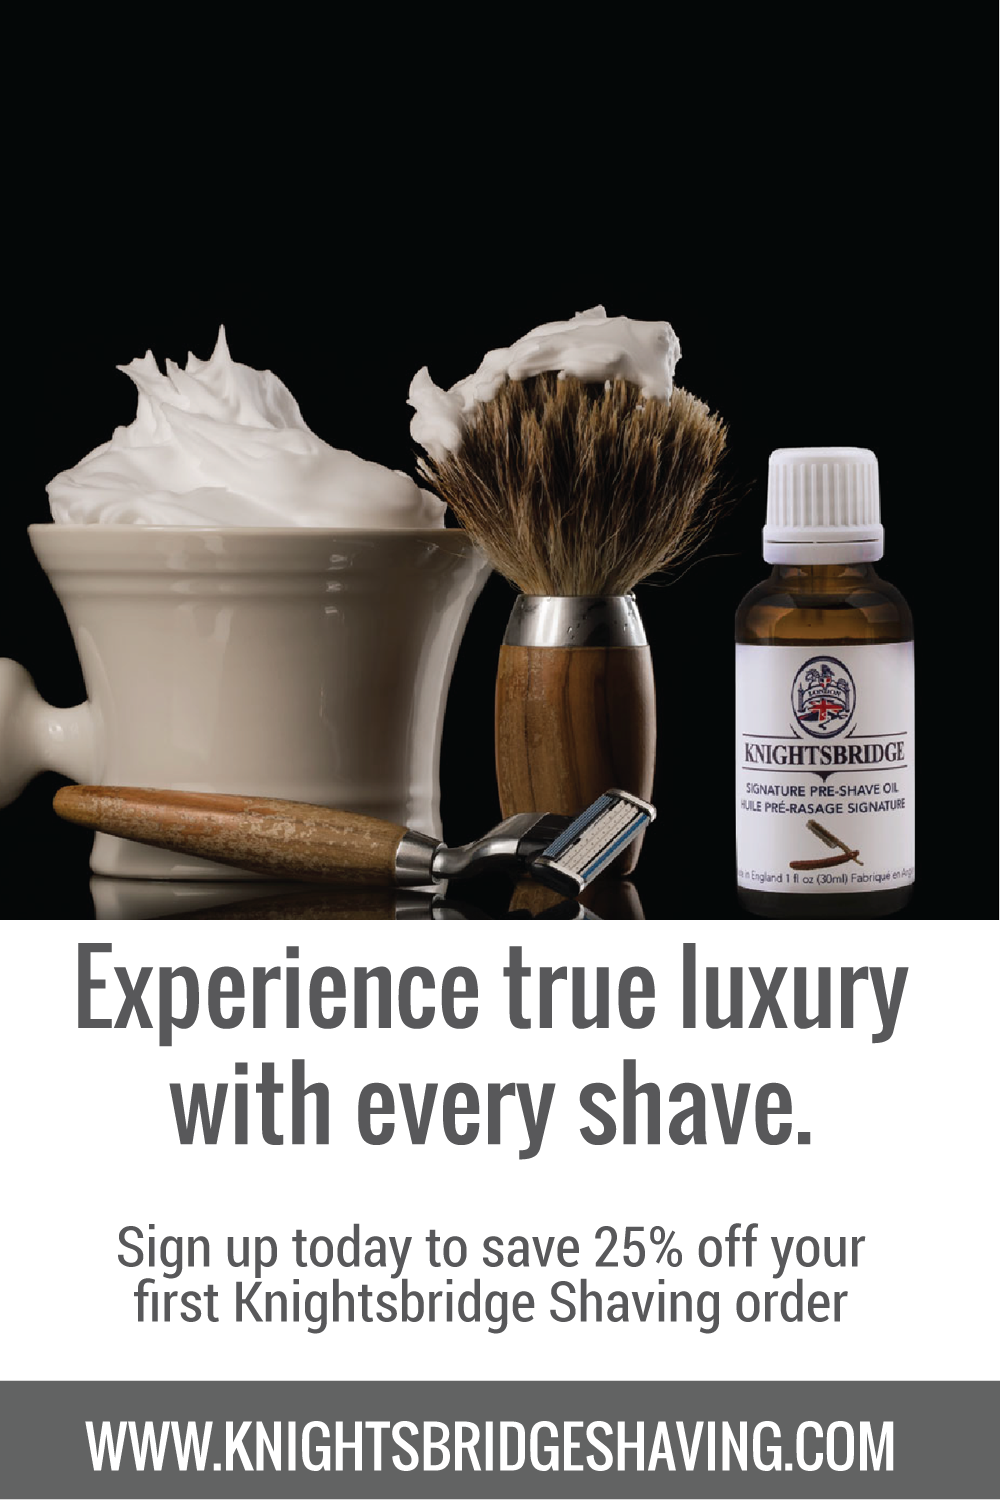 Experience True Luxury With Every Shave Pre Shave Oil Shaving Oil Shaving